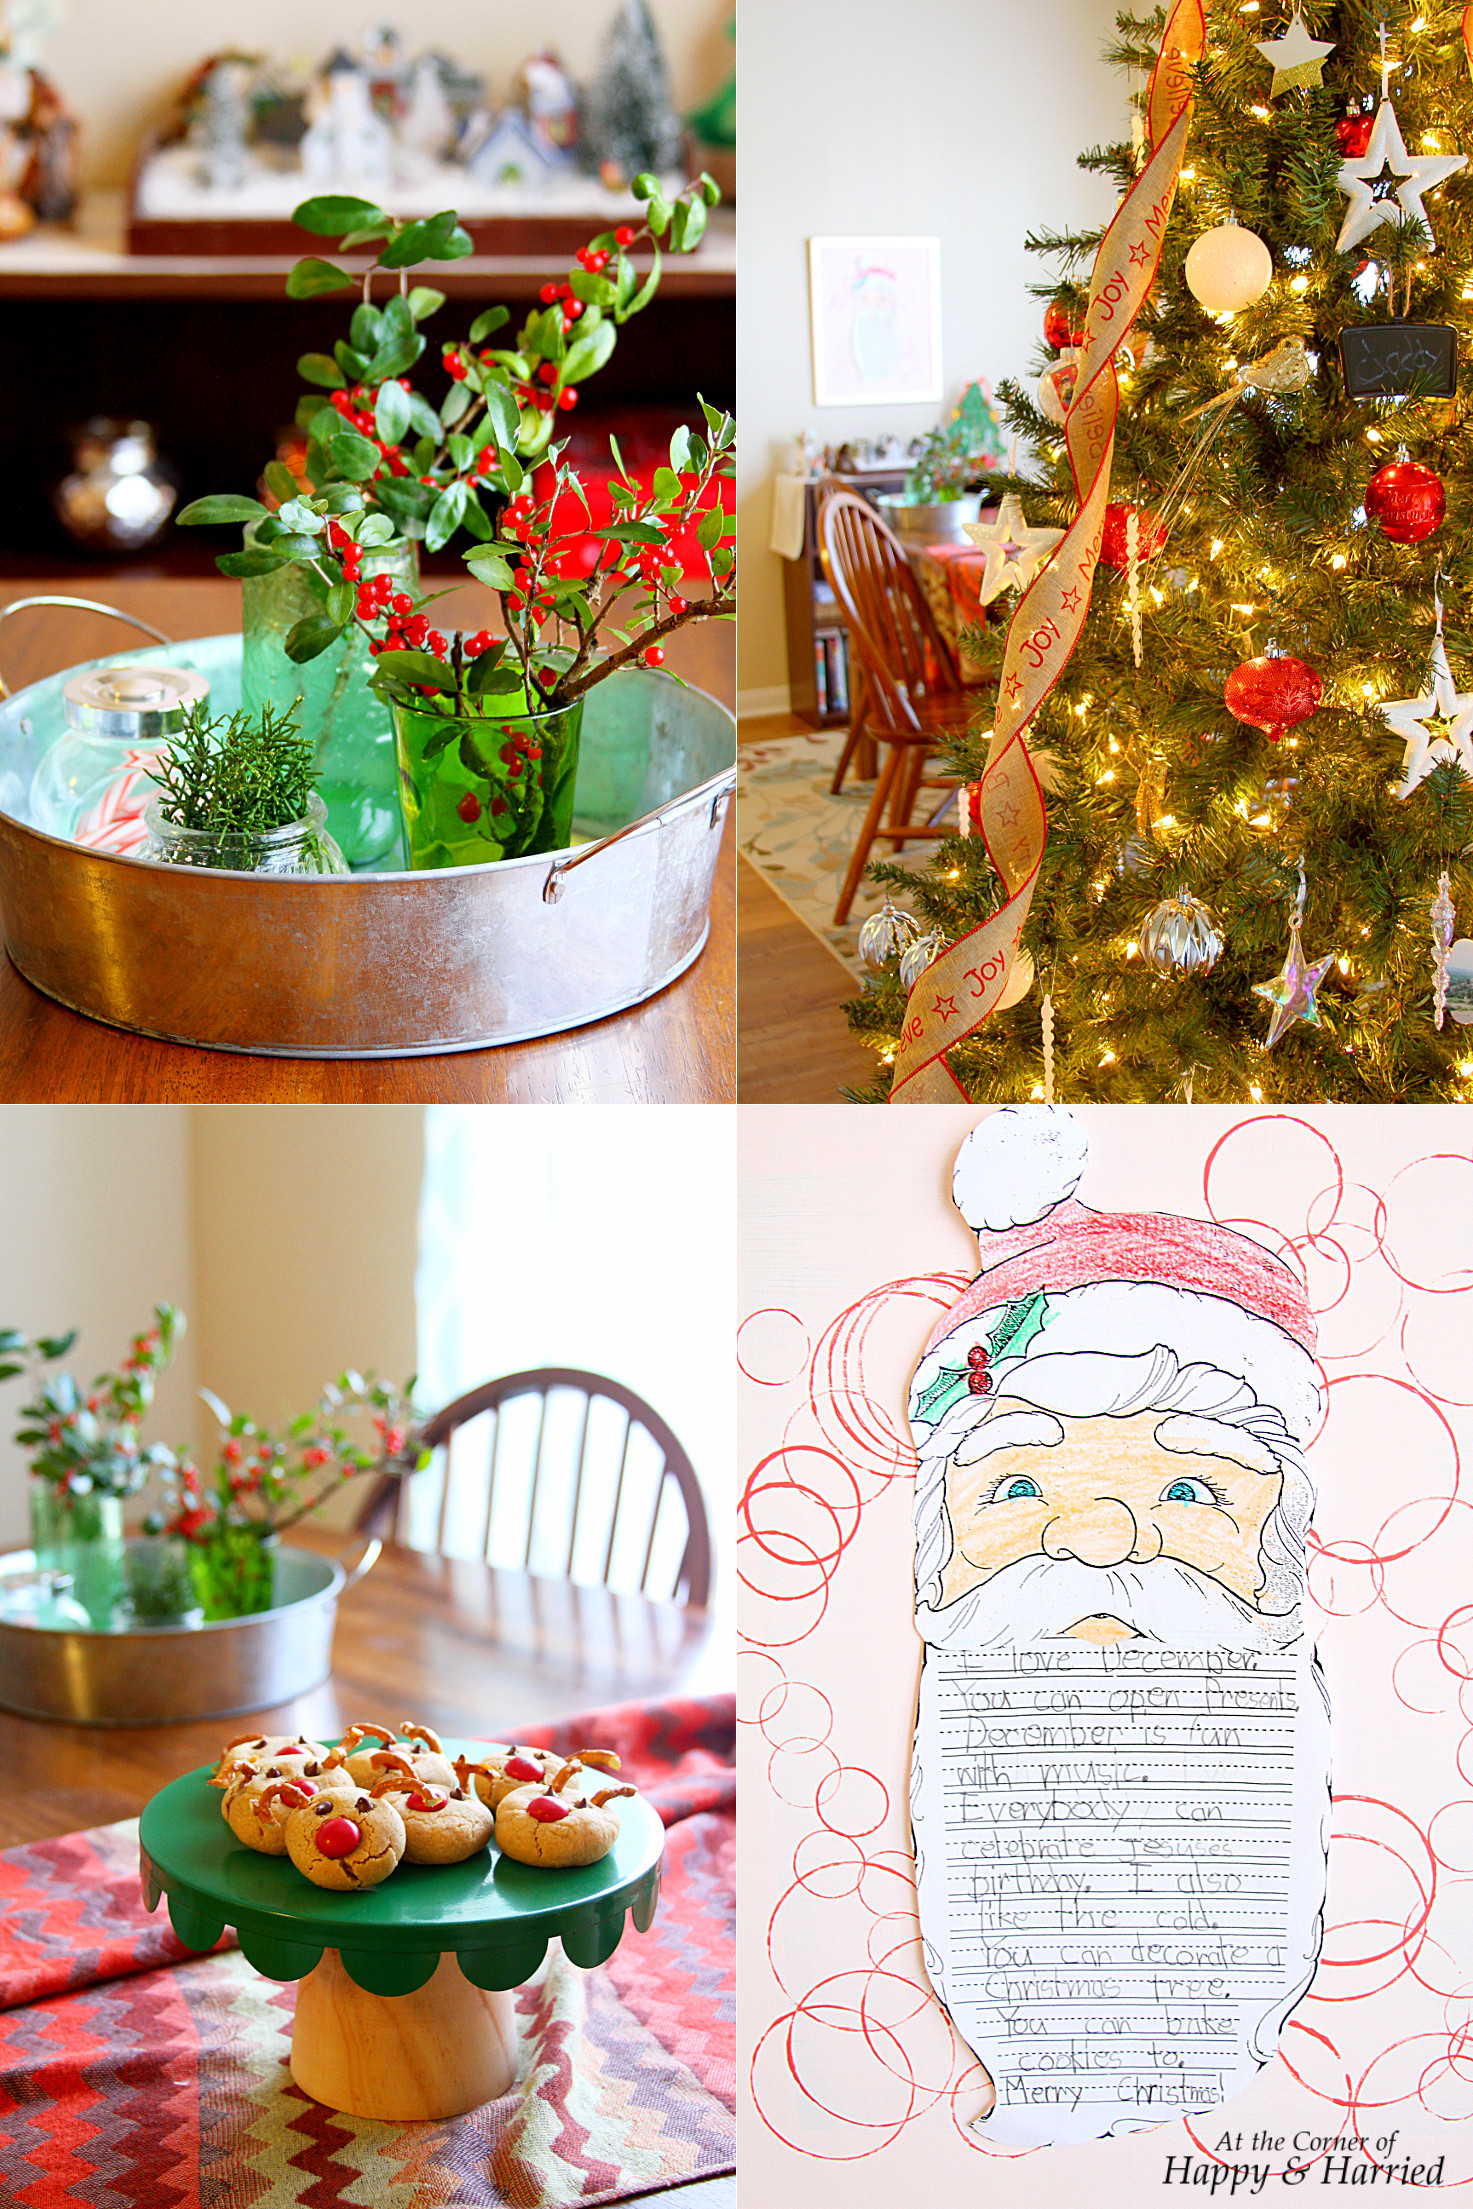 Happy&Harried - 2016 Christmas Decor